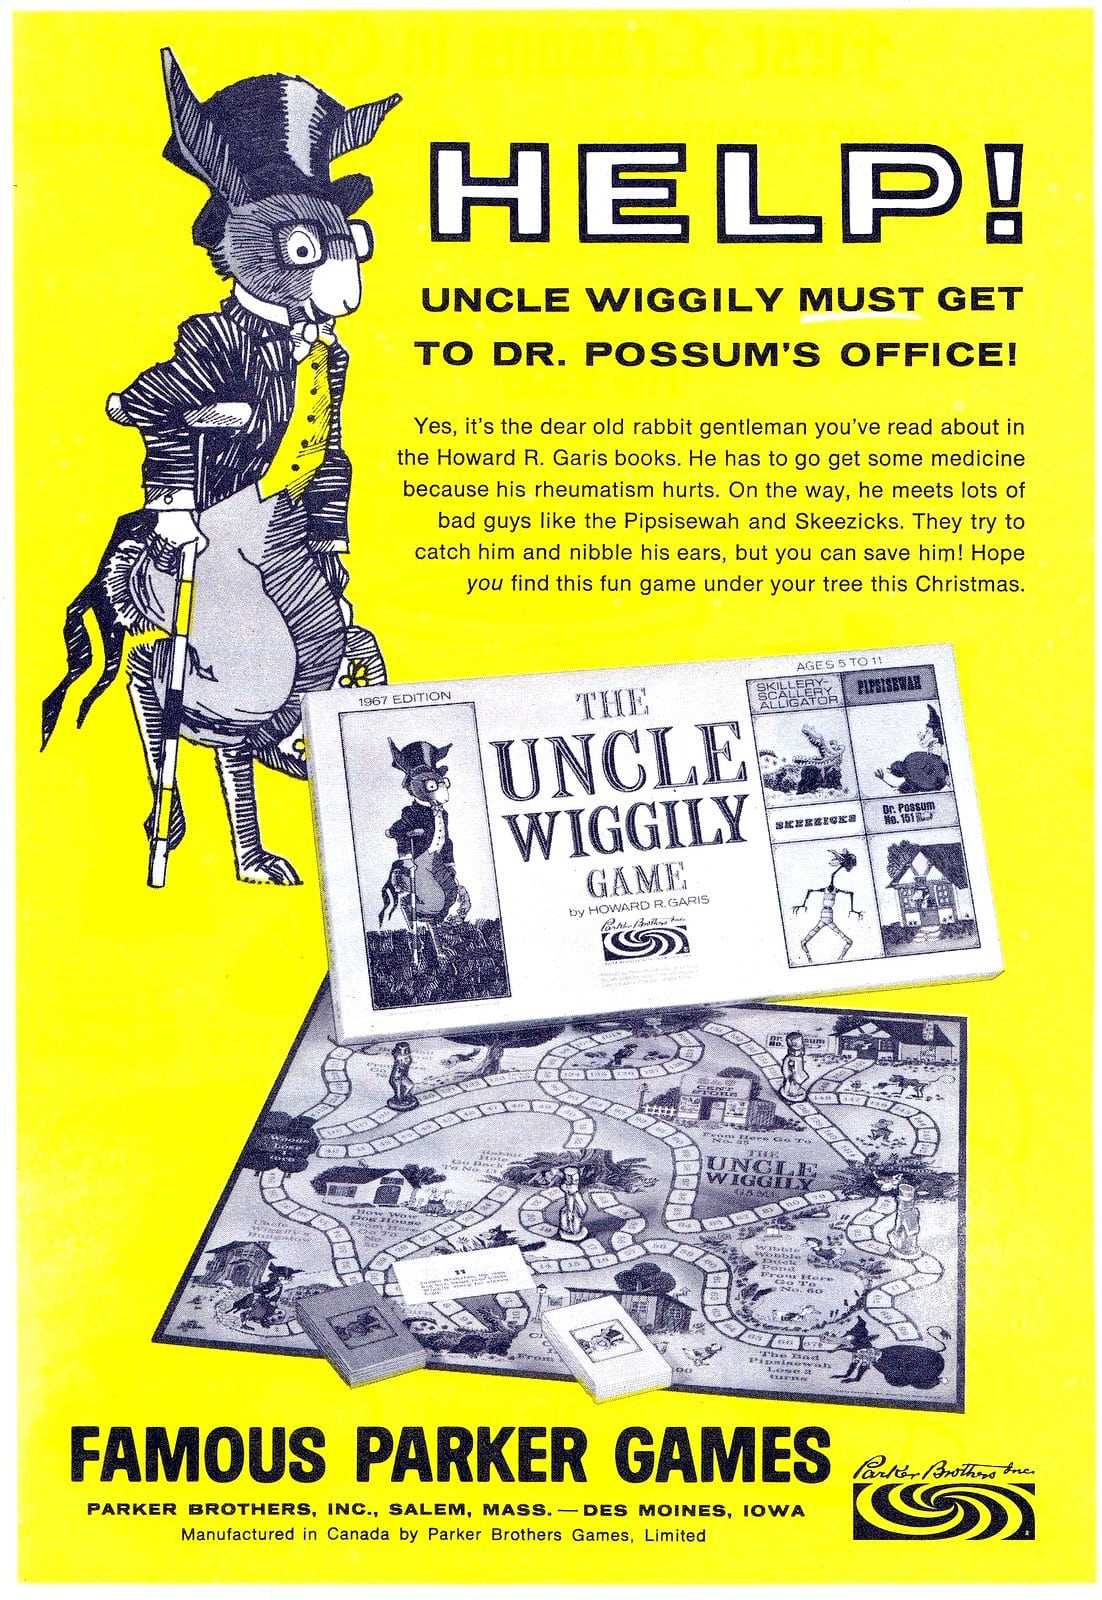 Vintage Uncle Wiggily game from Parker Brothers